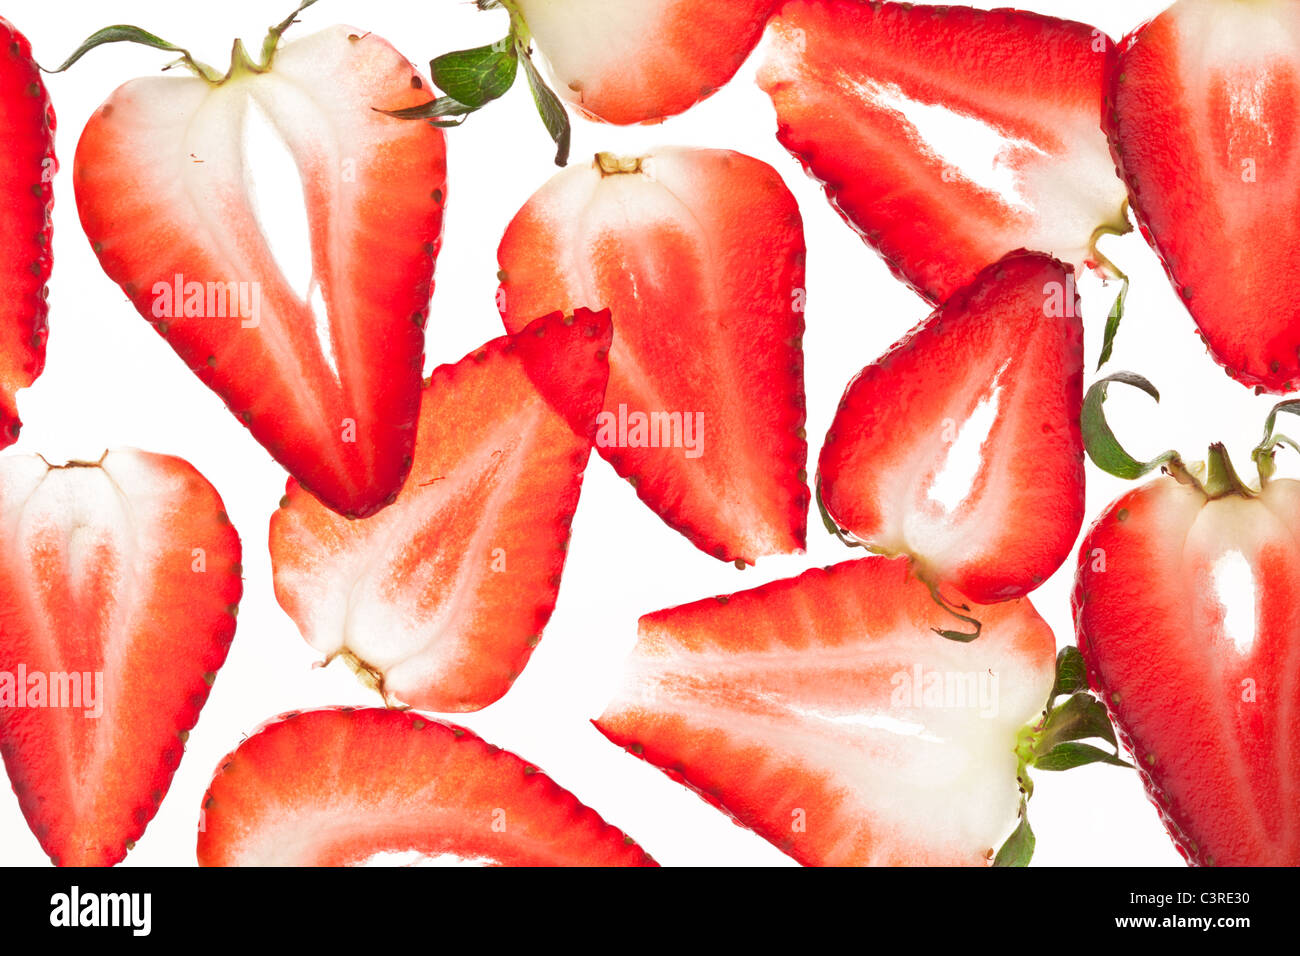 Back projected appetizing strawberry slices. - Stock Image